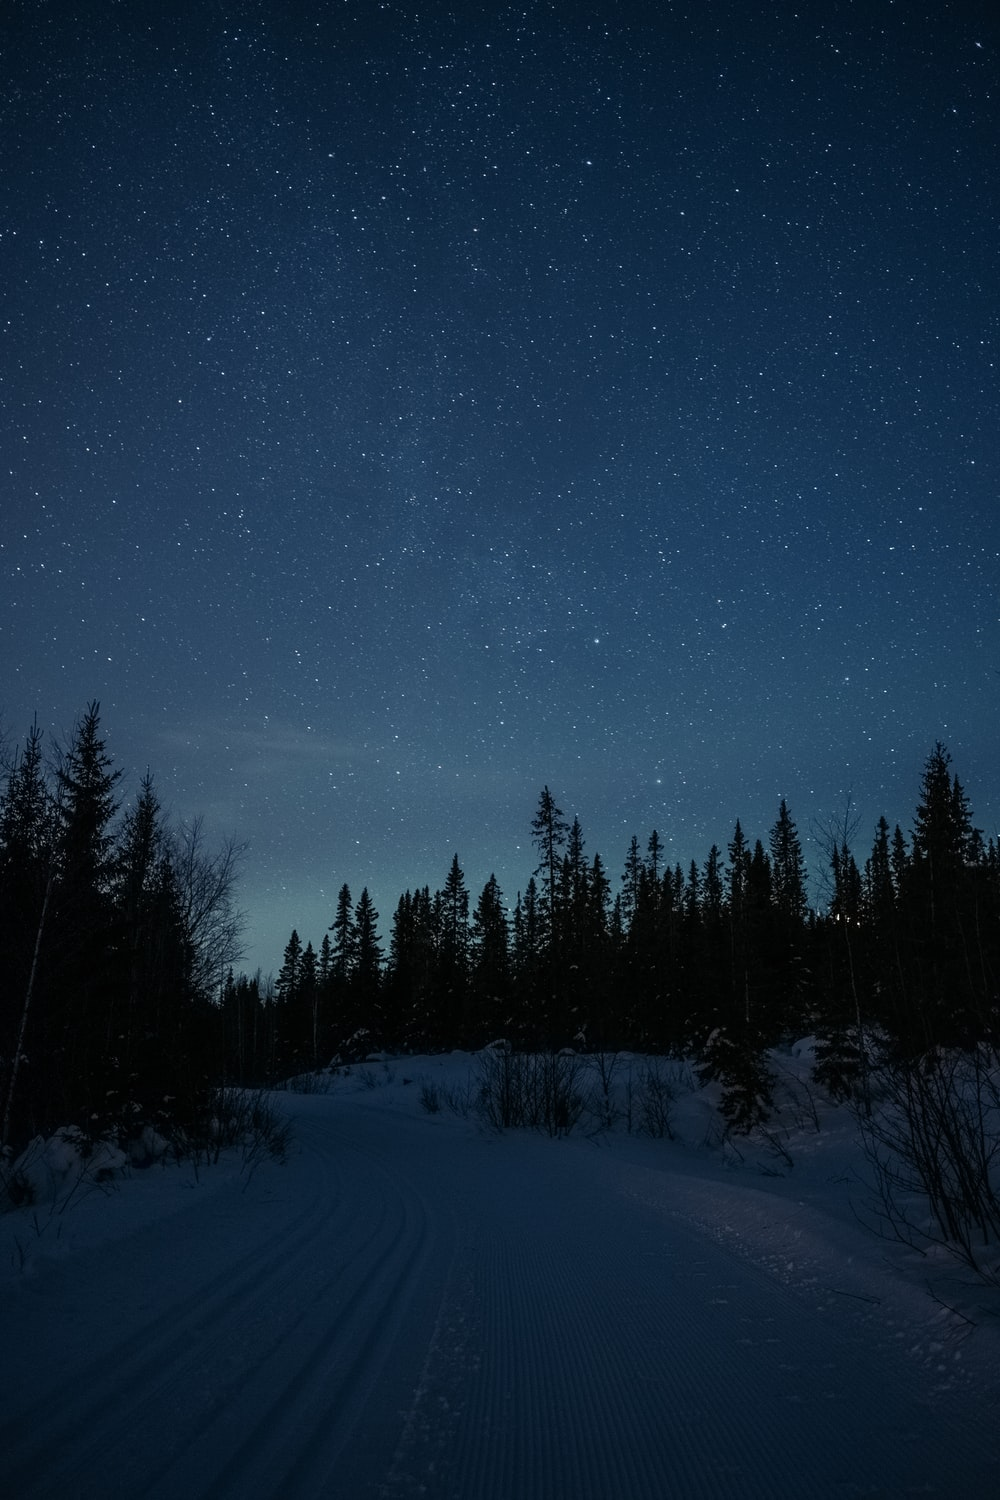 snow covered field and trees under starry night